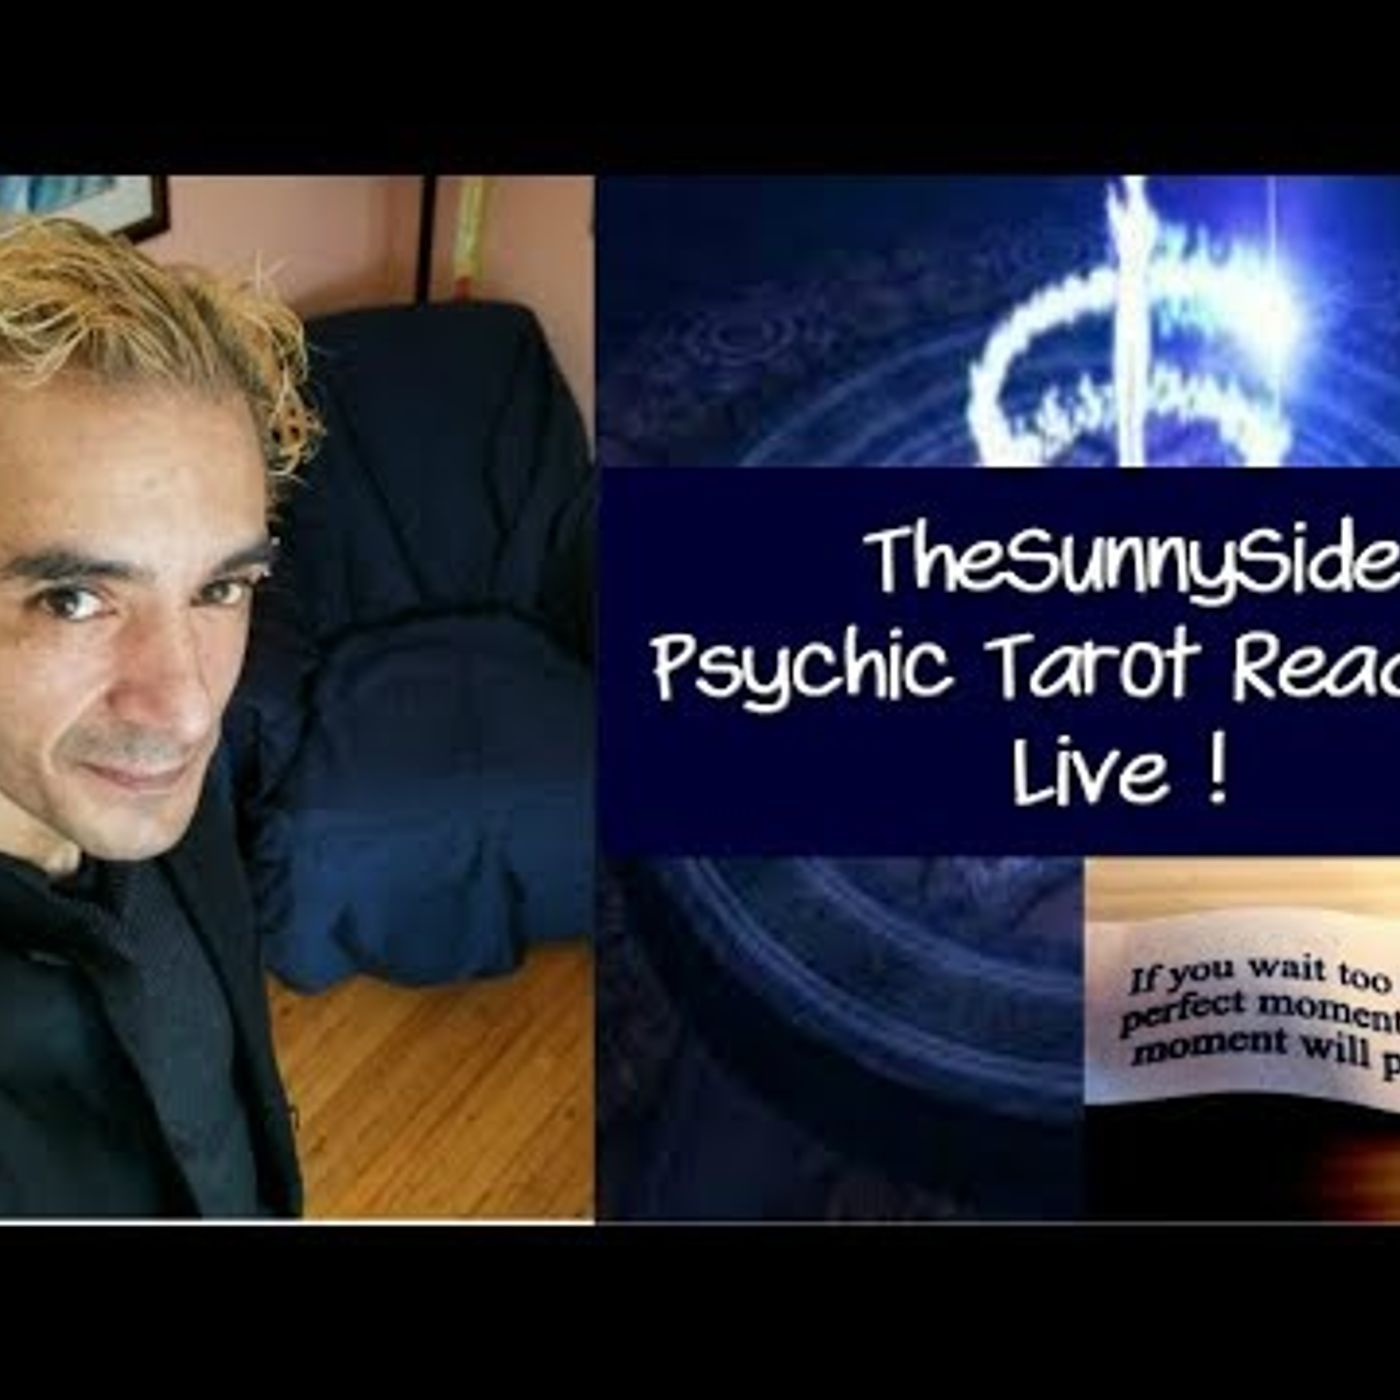 Late Night $11.11Tarot + $25MiniAstro Reading ! Live @ 1130pm